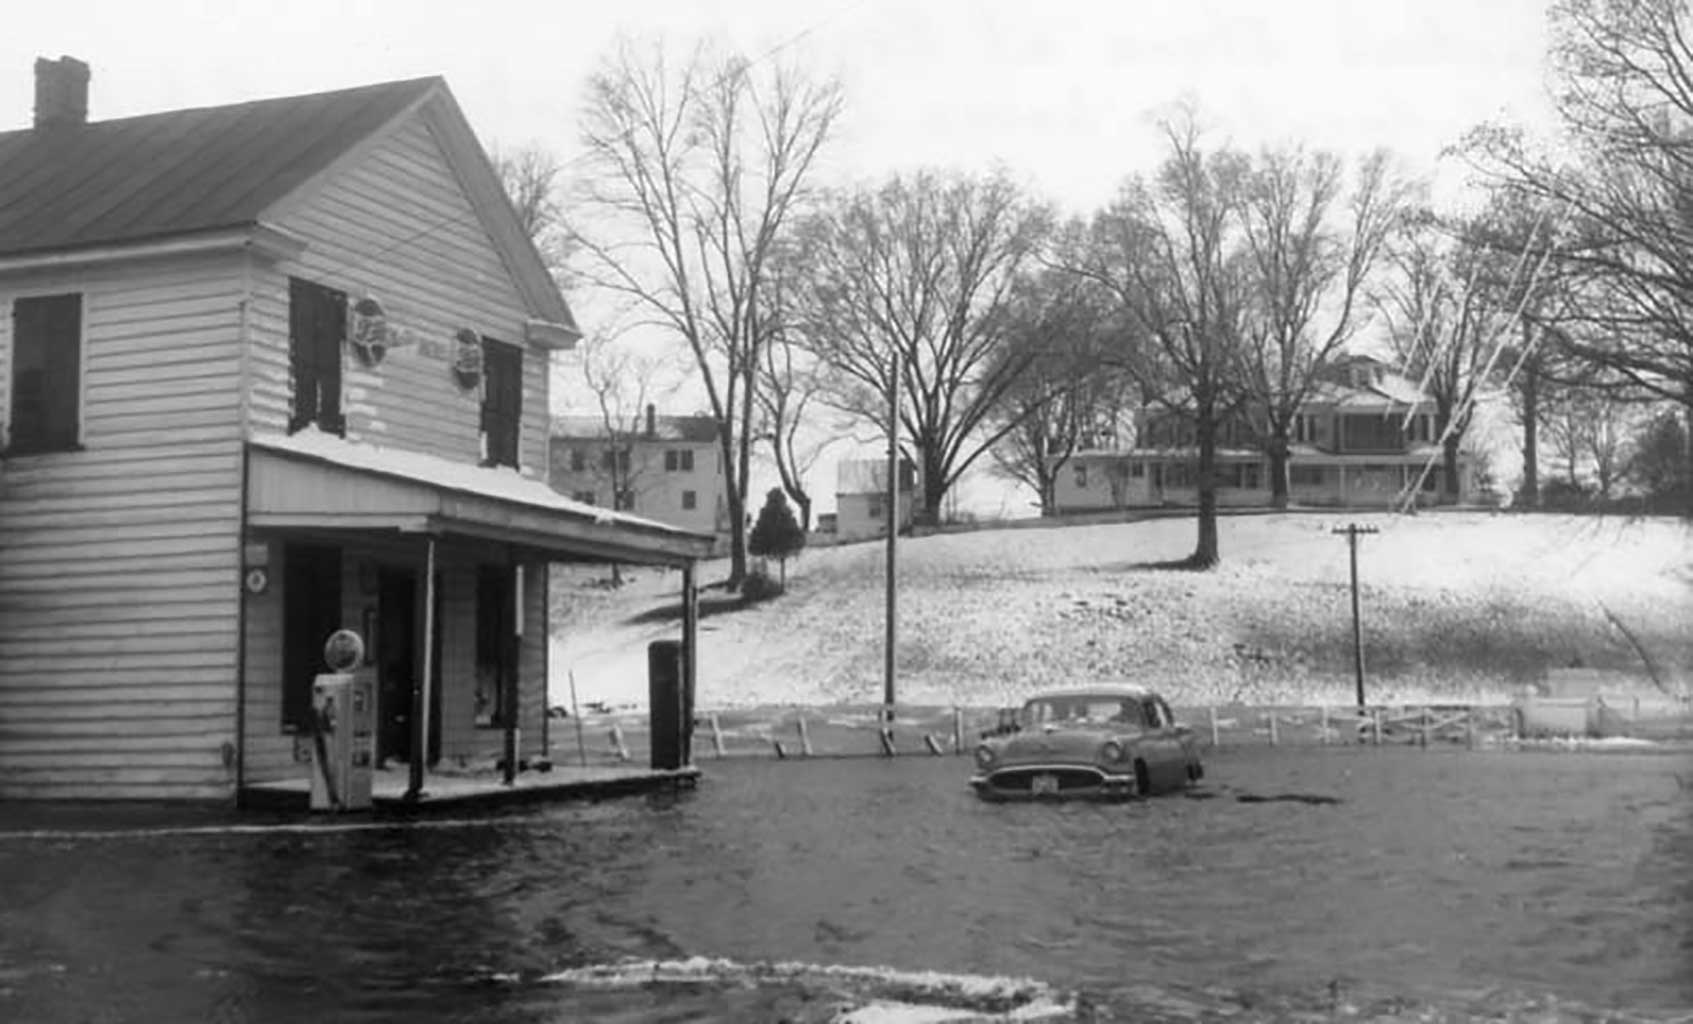 martins-store-at-everets-winter-1961-62-russell-home-in-background-img242